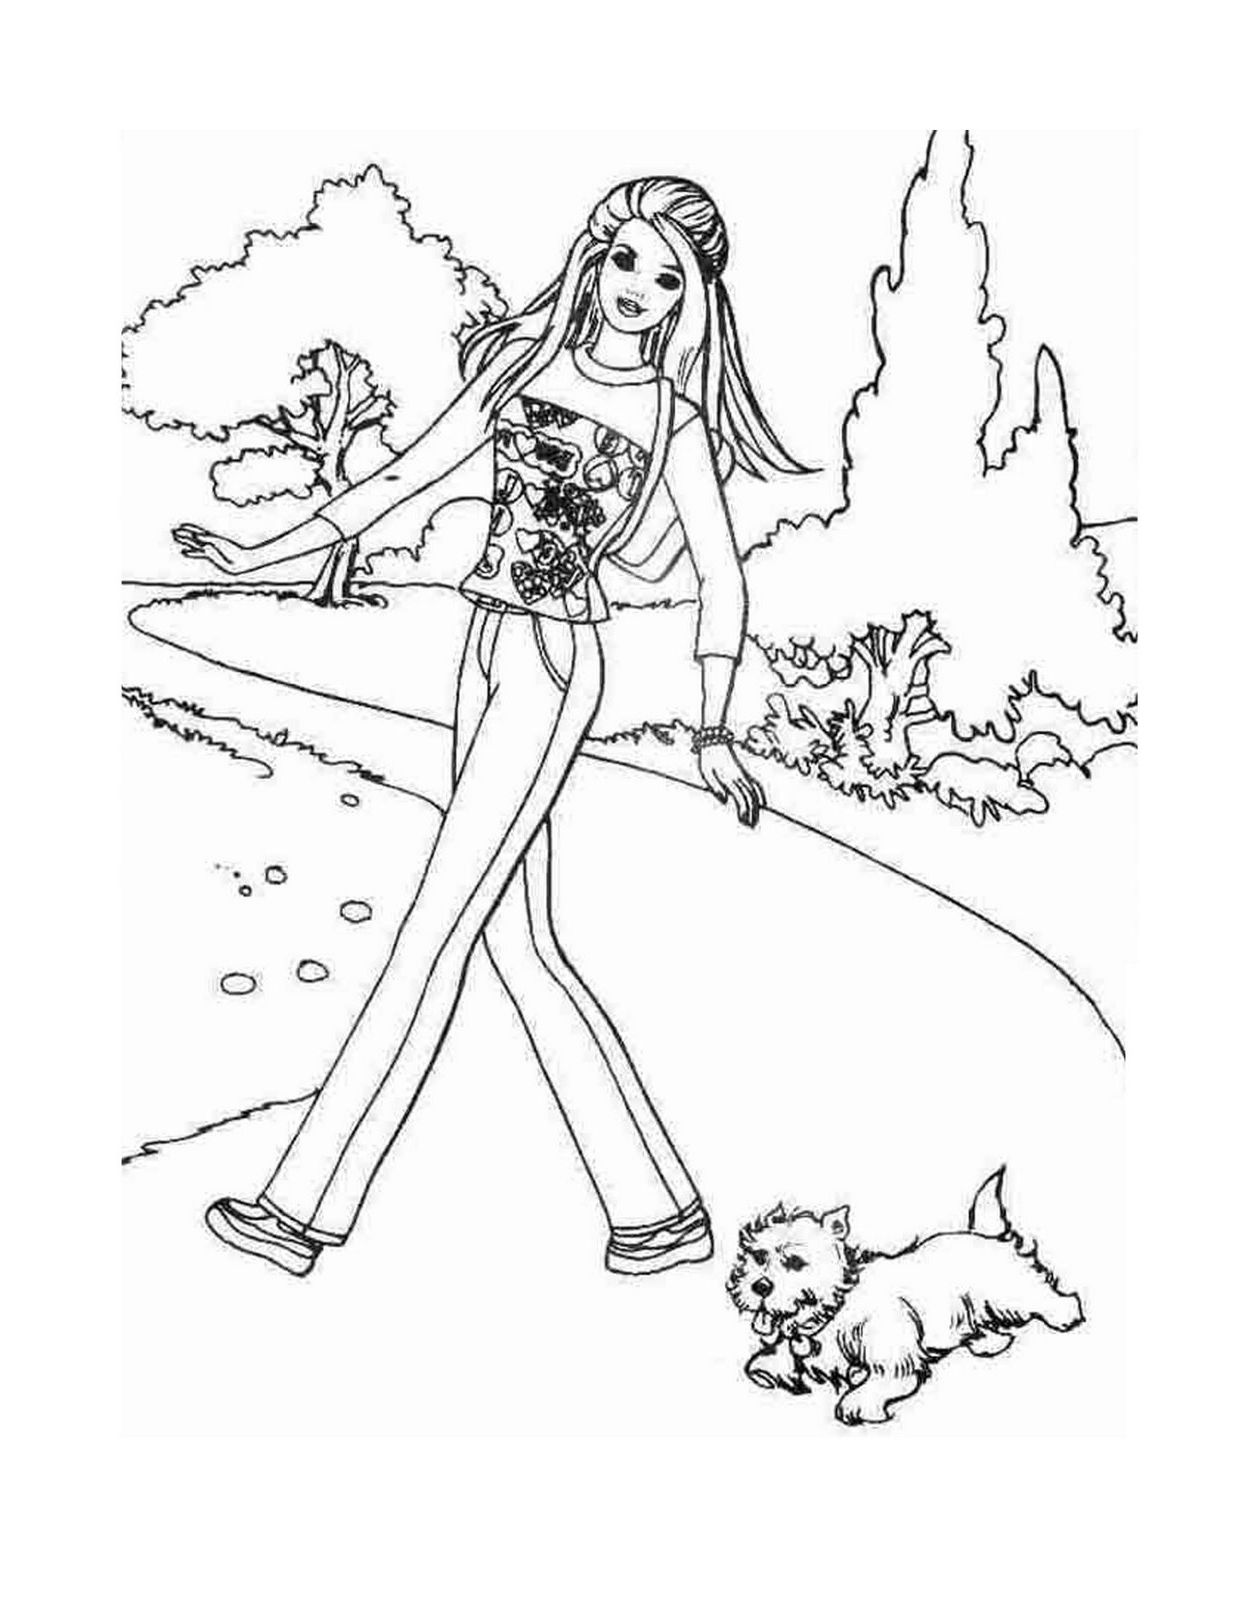 barbie and dog coloring pages barbie dog coloring pages at getcoloringscom free barbie dog coloring and pages